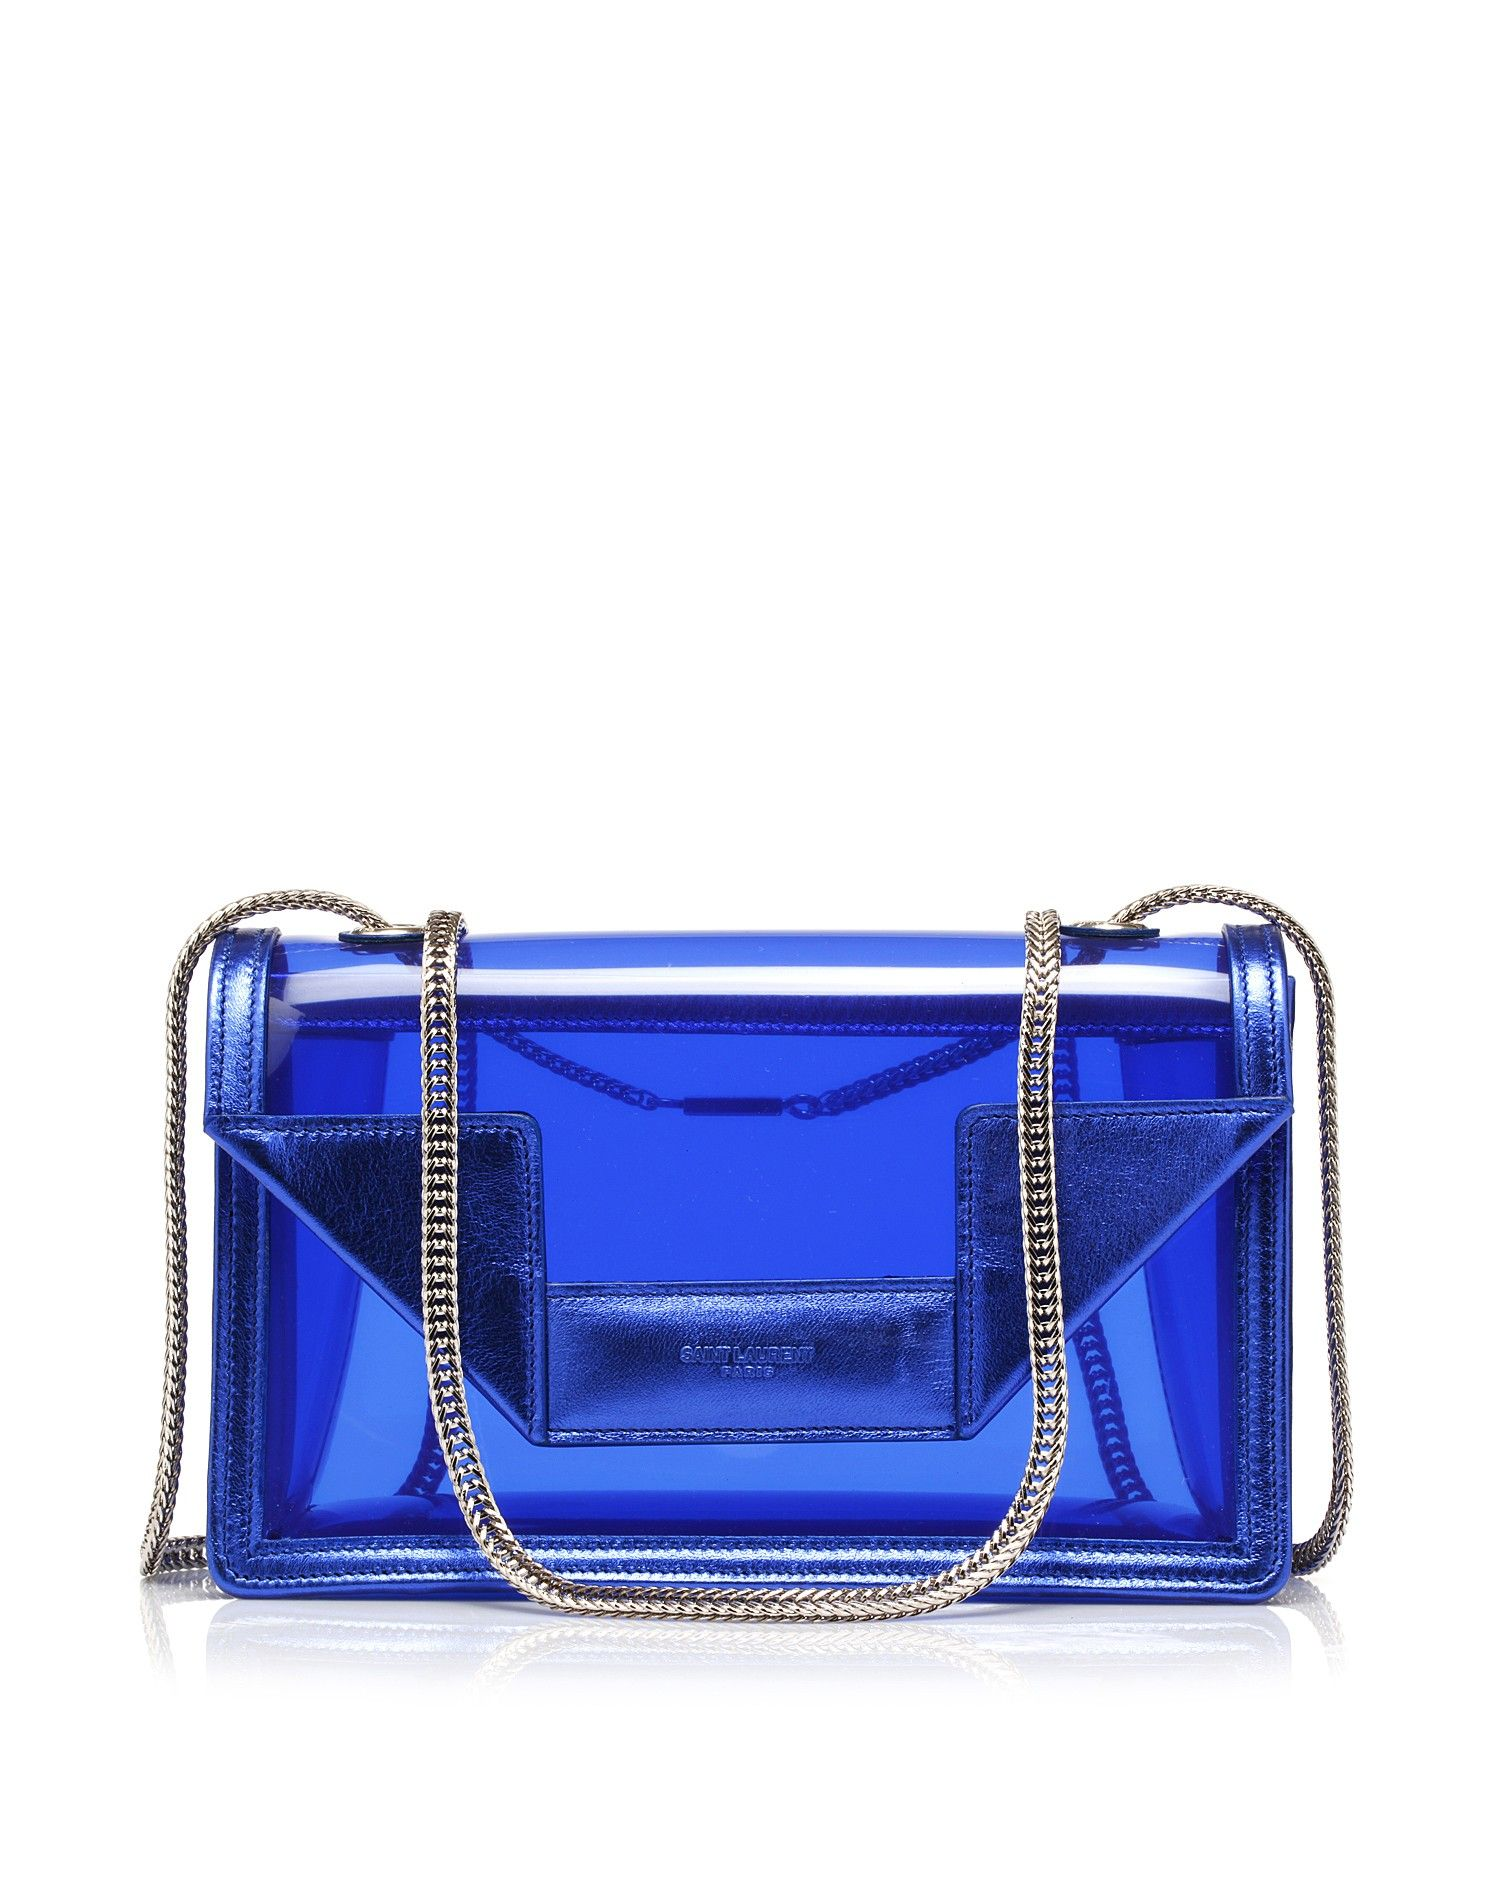 779a2aab15cdce Transparent pvc bag by #SaintLaurent | bag | Bags, Blue bags, Clear bags